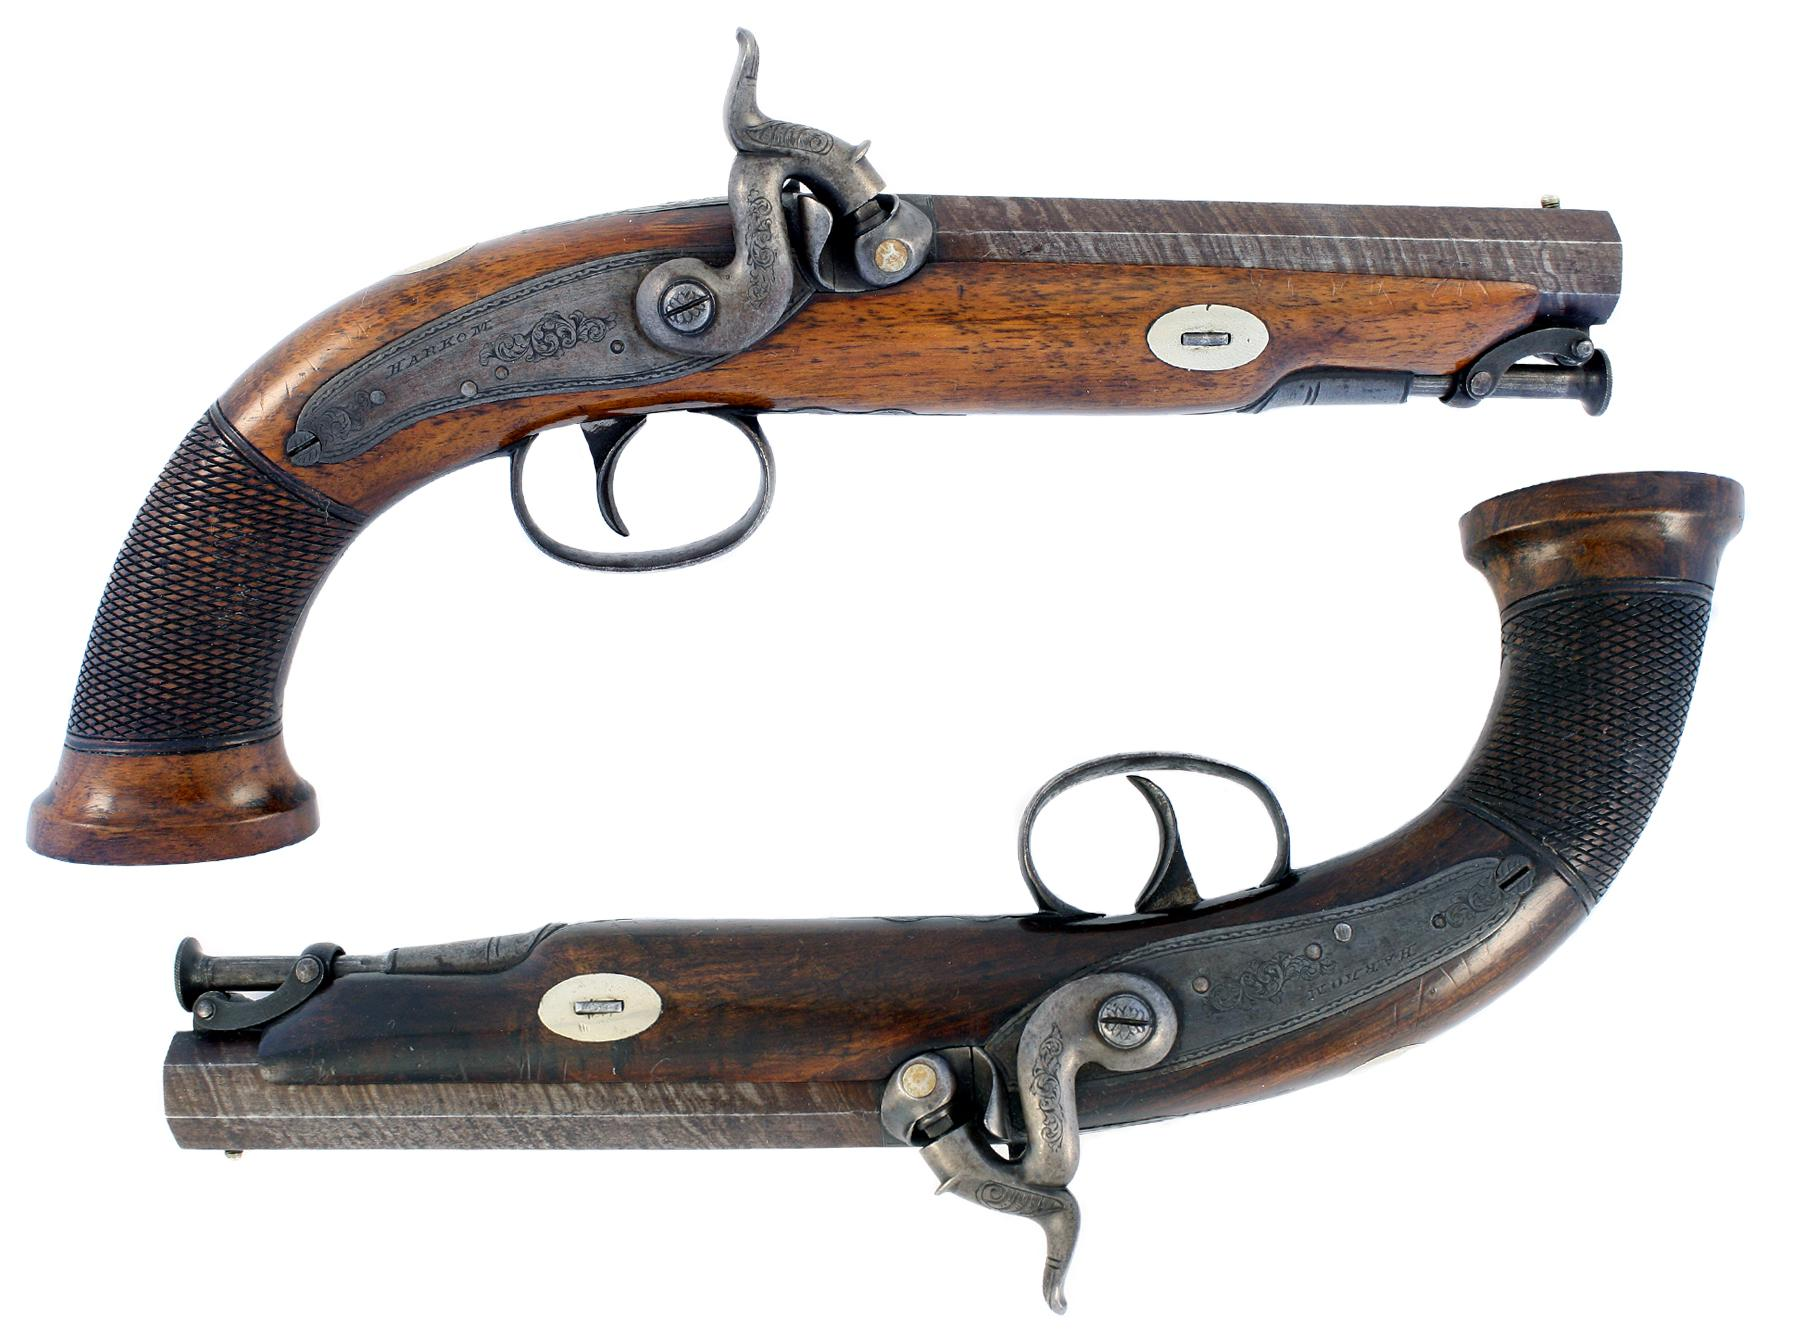 A Superb Pair of Pistols